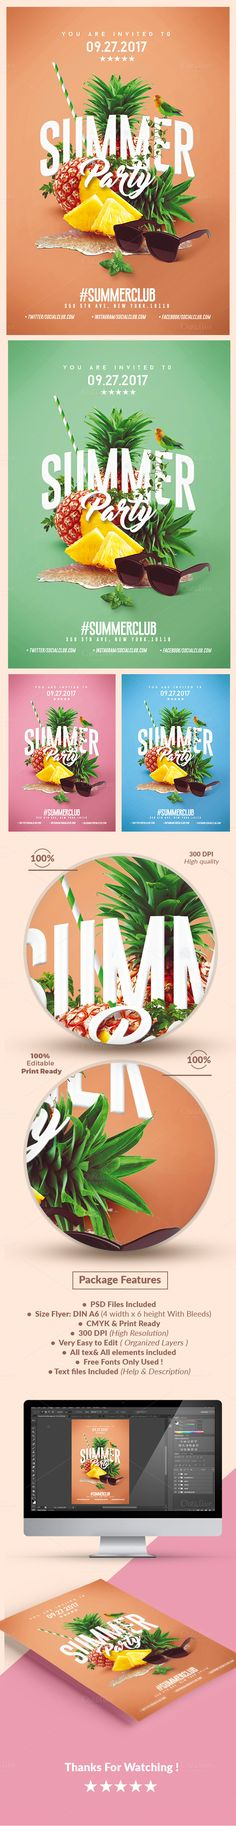 Summer Party | Psd Flyer Template 4 by Creative Flyers on @creativemarket…